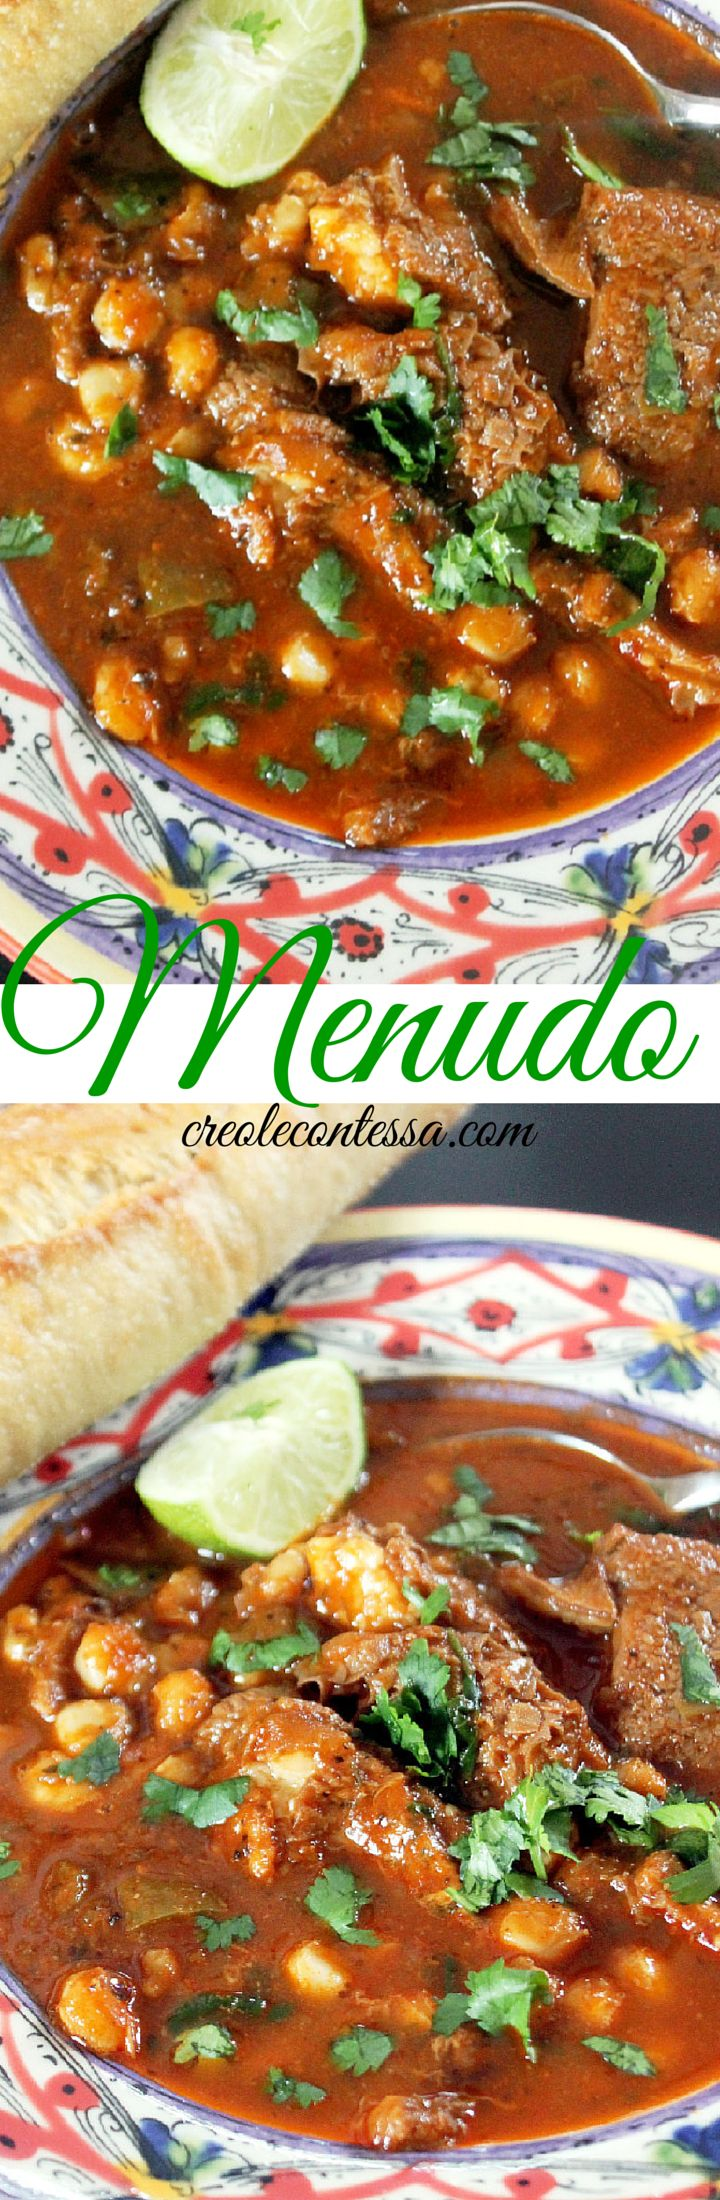 Hot and Spicy Menudo-Creole Contessa #cincodemayo